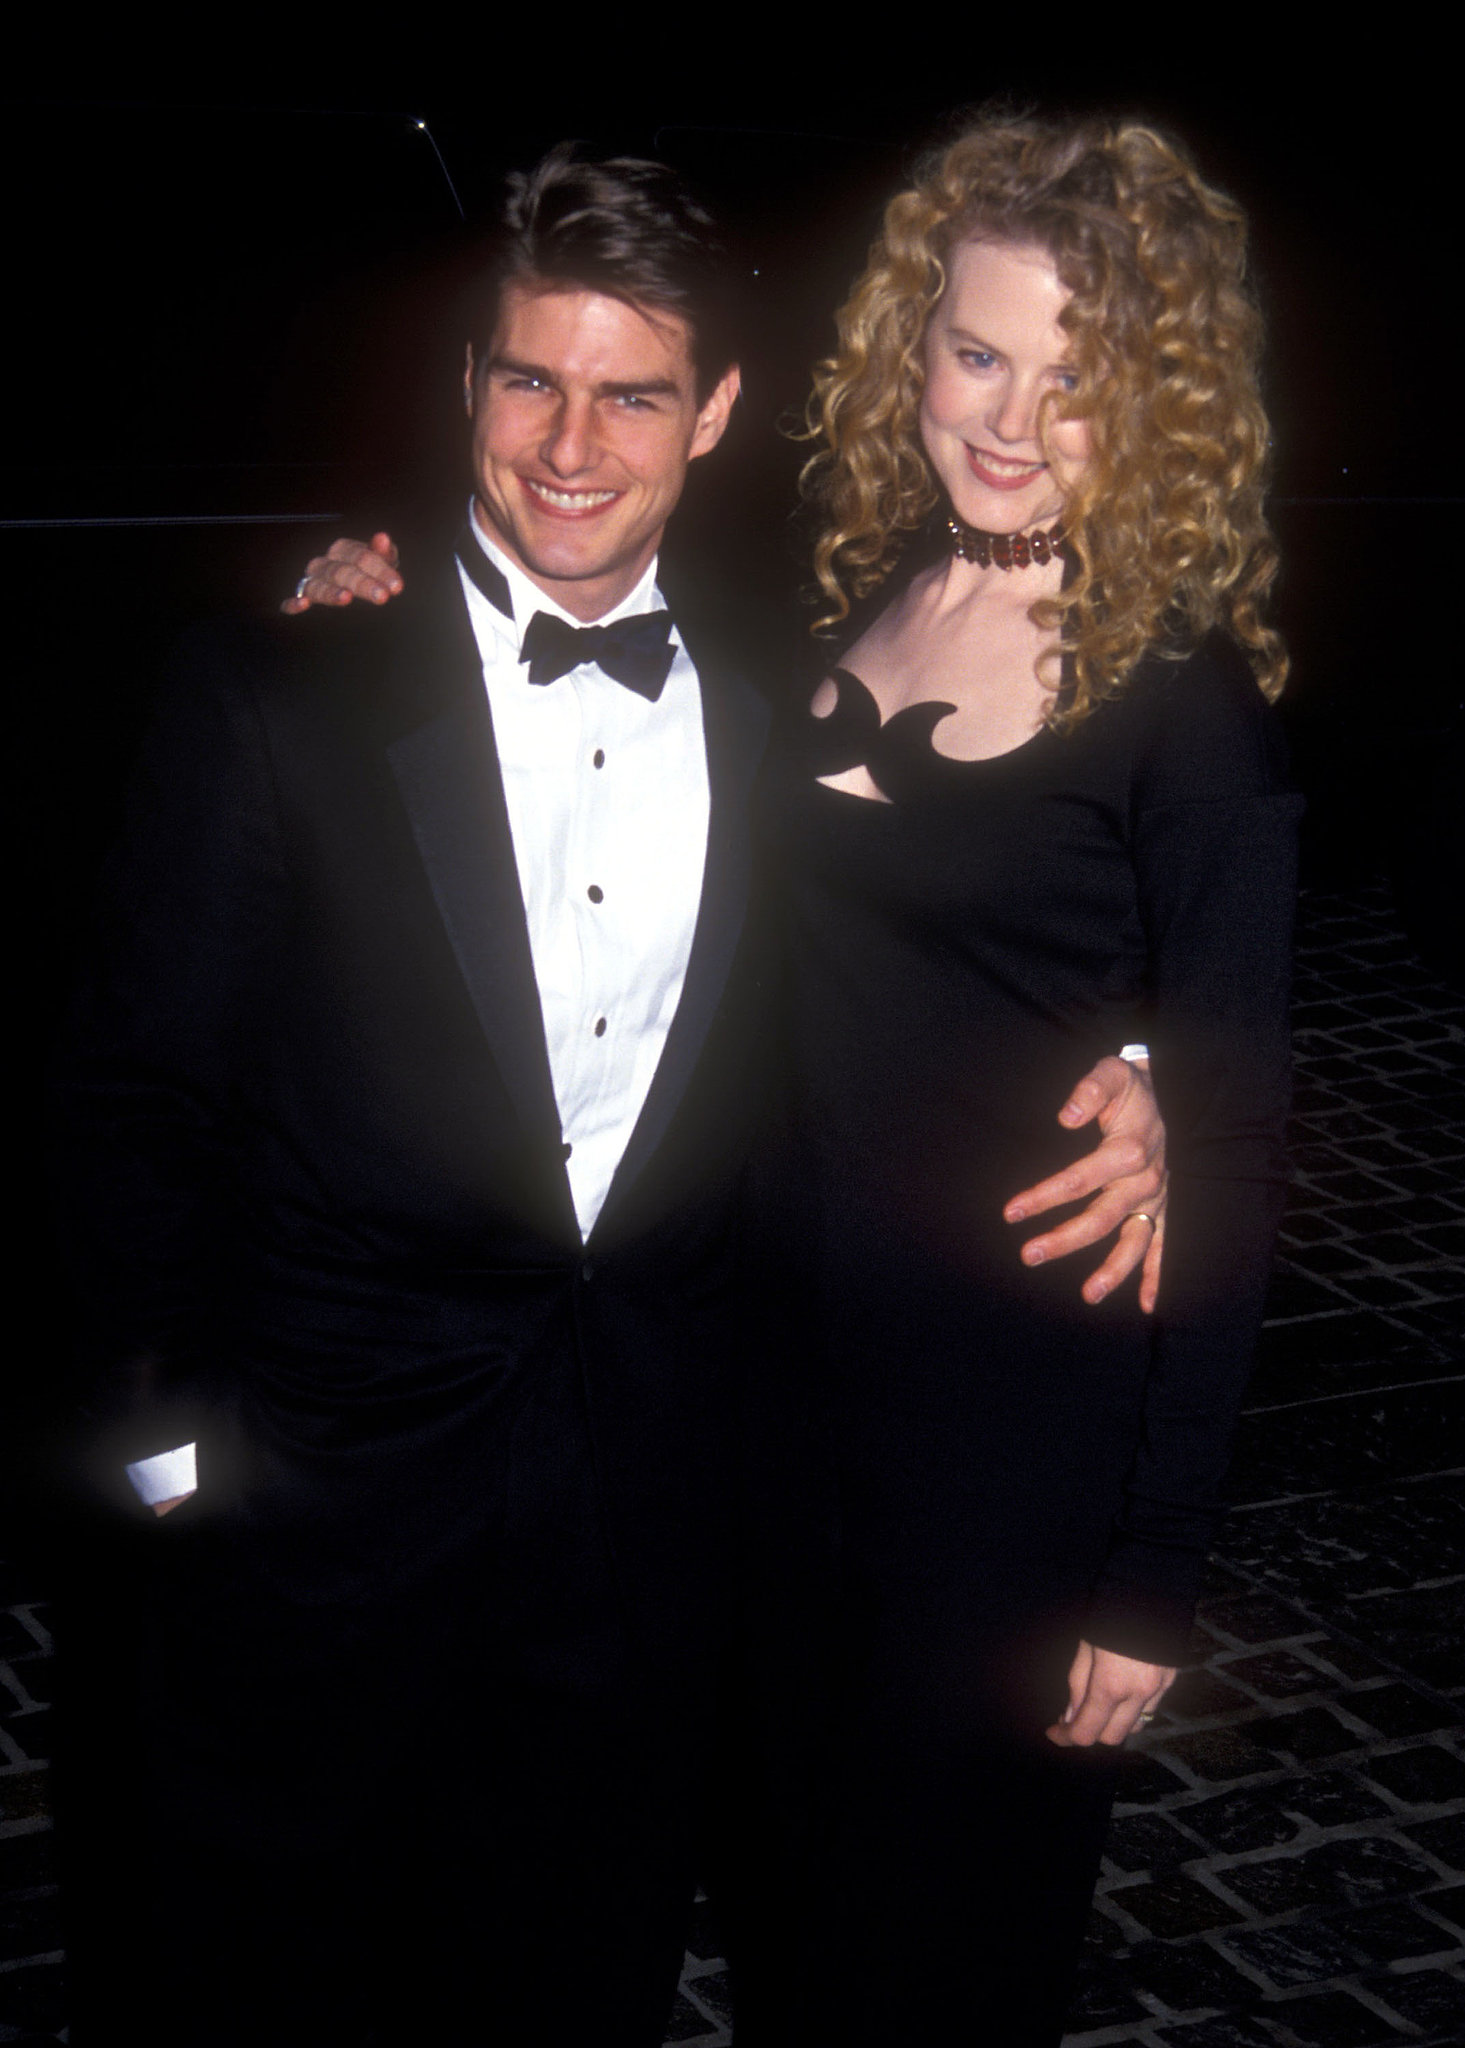 Tom Cruise donned a tux with Nicole Kidman at the Golden Globes in January 1992.